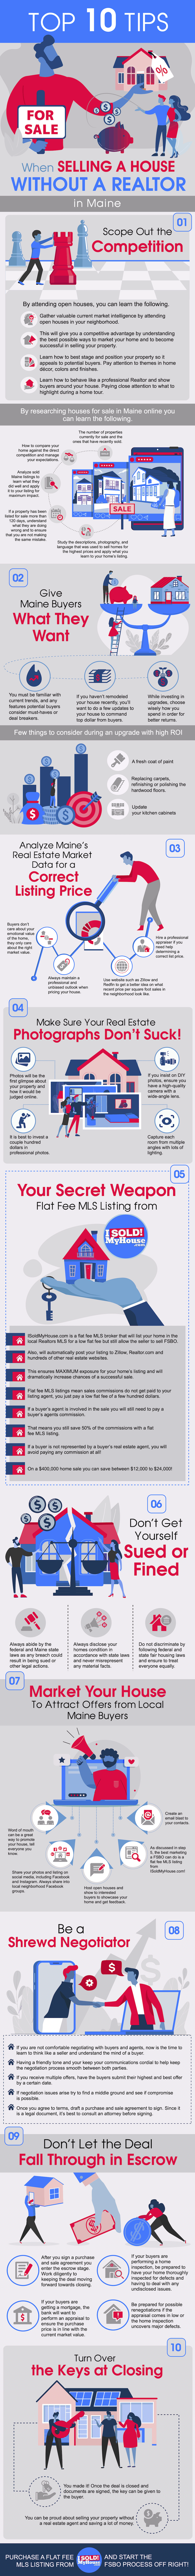 infographic of the 10 steps to sell a house in maine without an agent